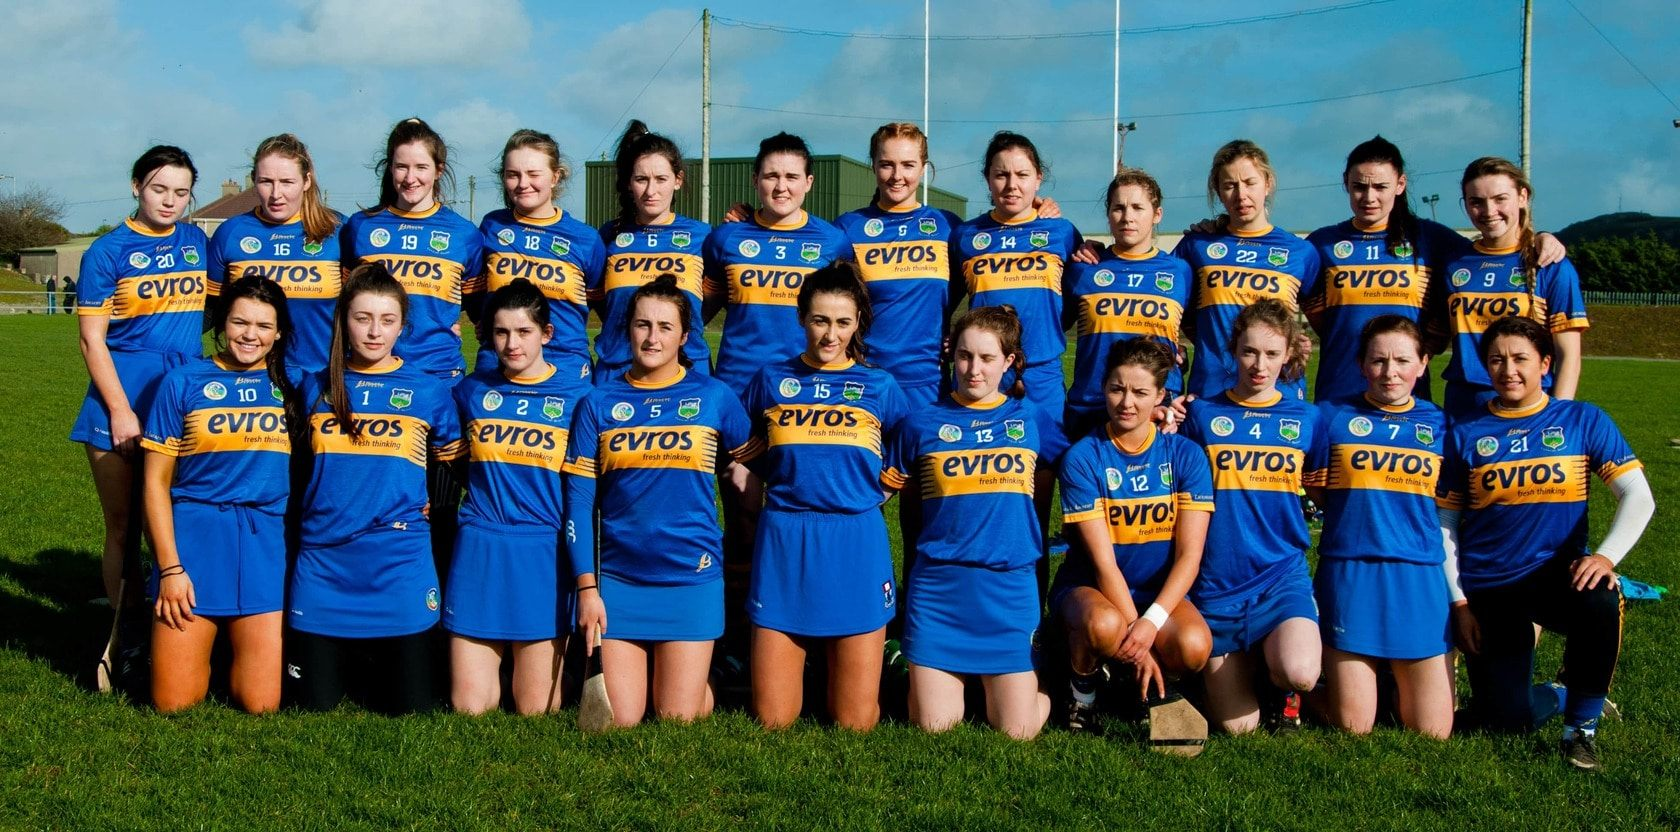 The Tipperary Senior Camogie Team 2019